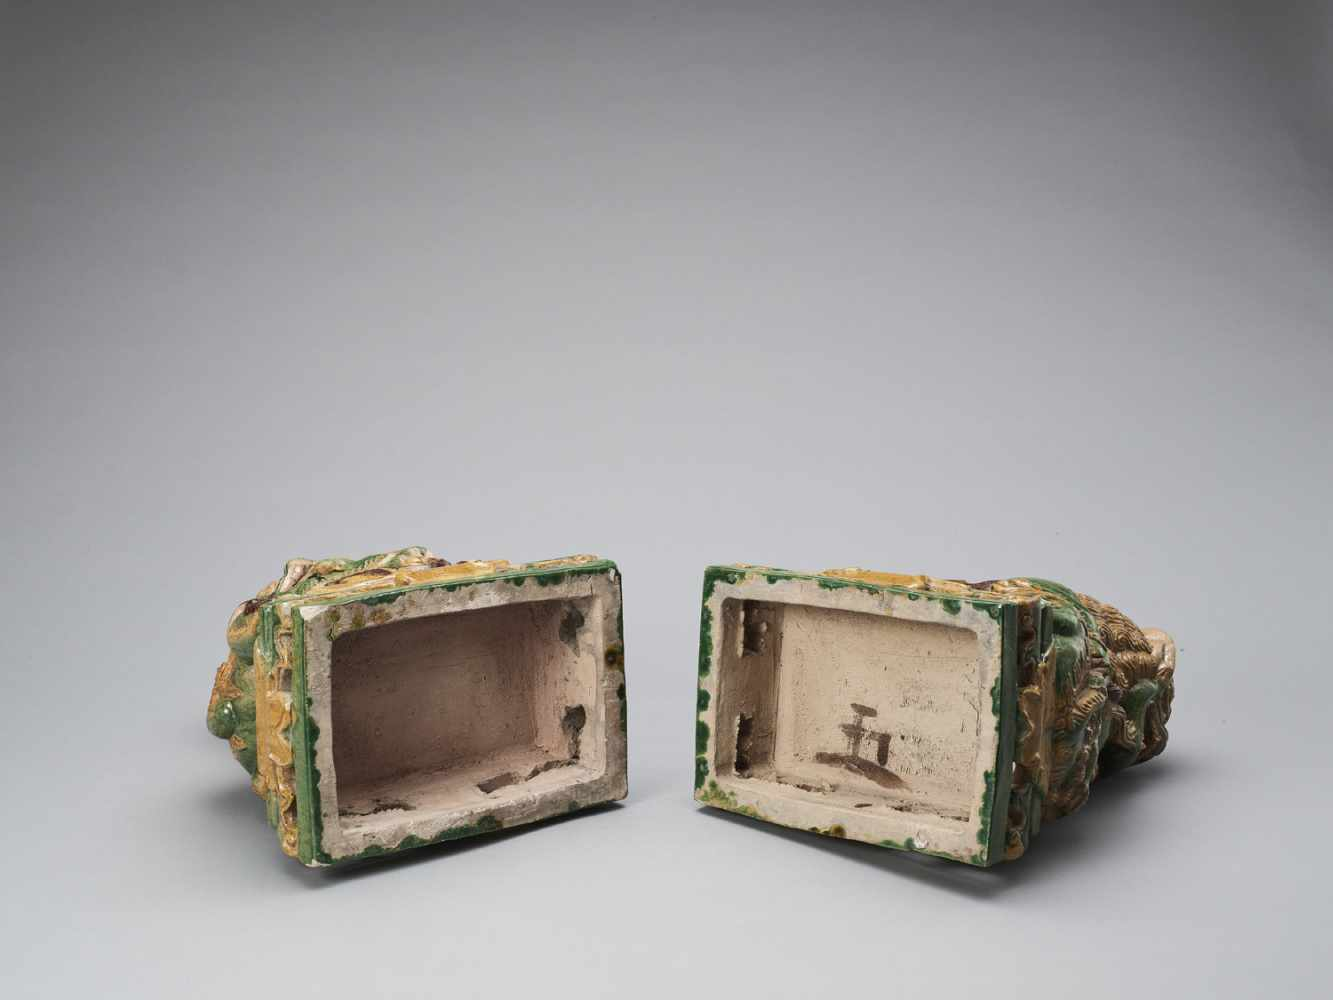 A PAIR OF RETICULATED SANCAI GLAZED POTTERY BUDDHIST LIONS, LATE MING TO EARLIER QING - Bild 7 aus 8